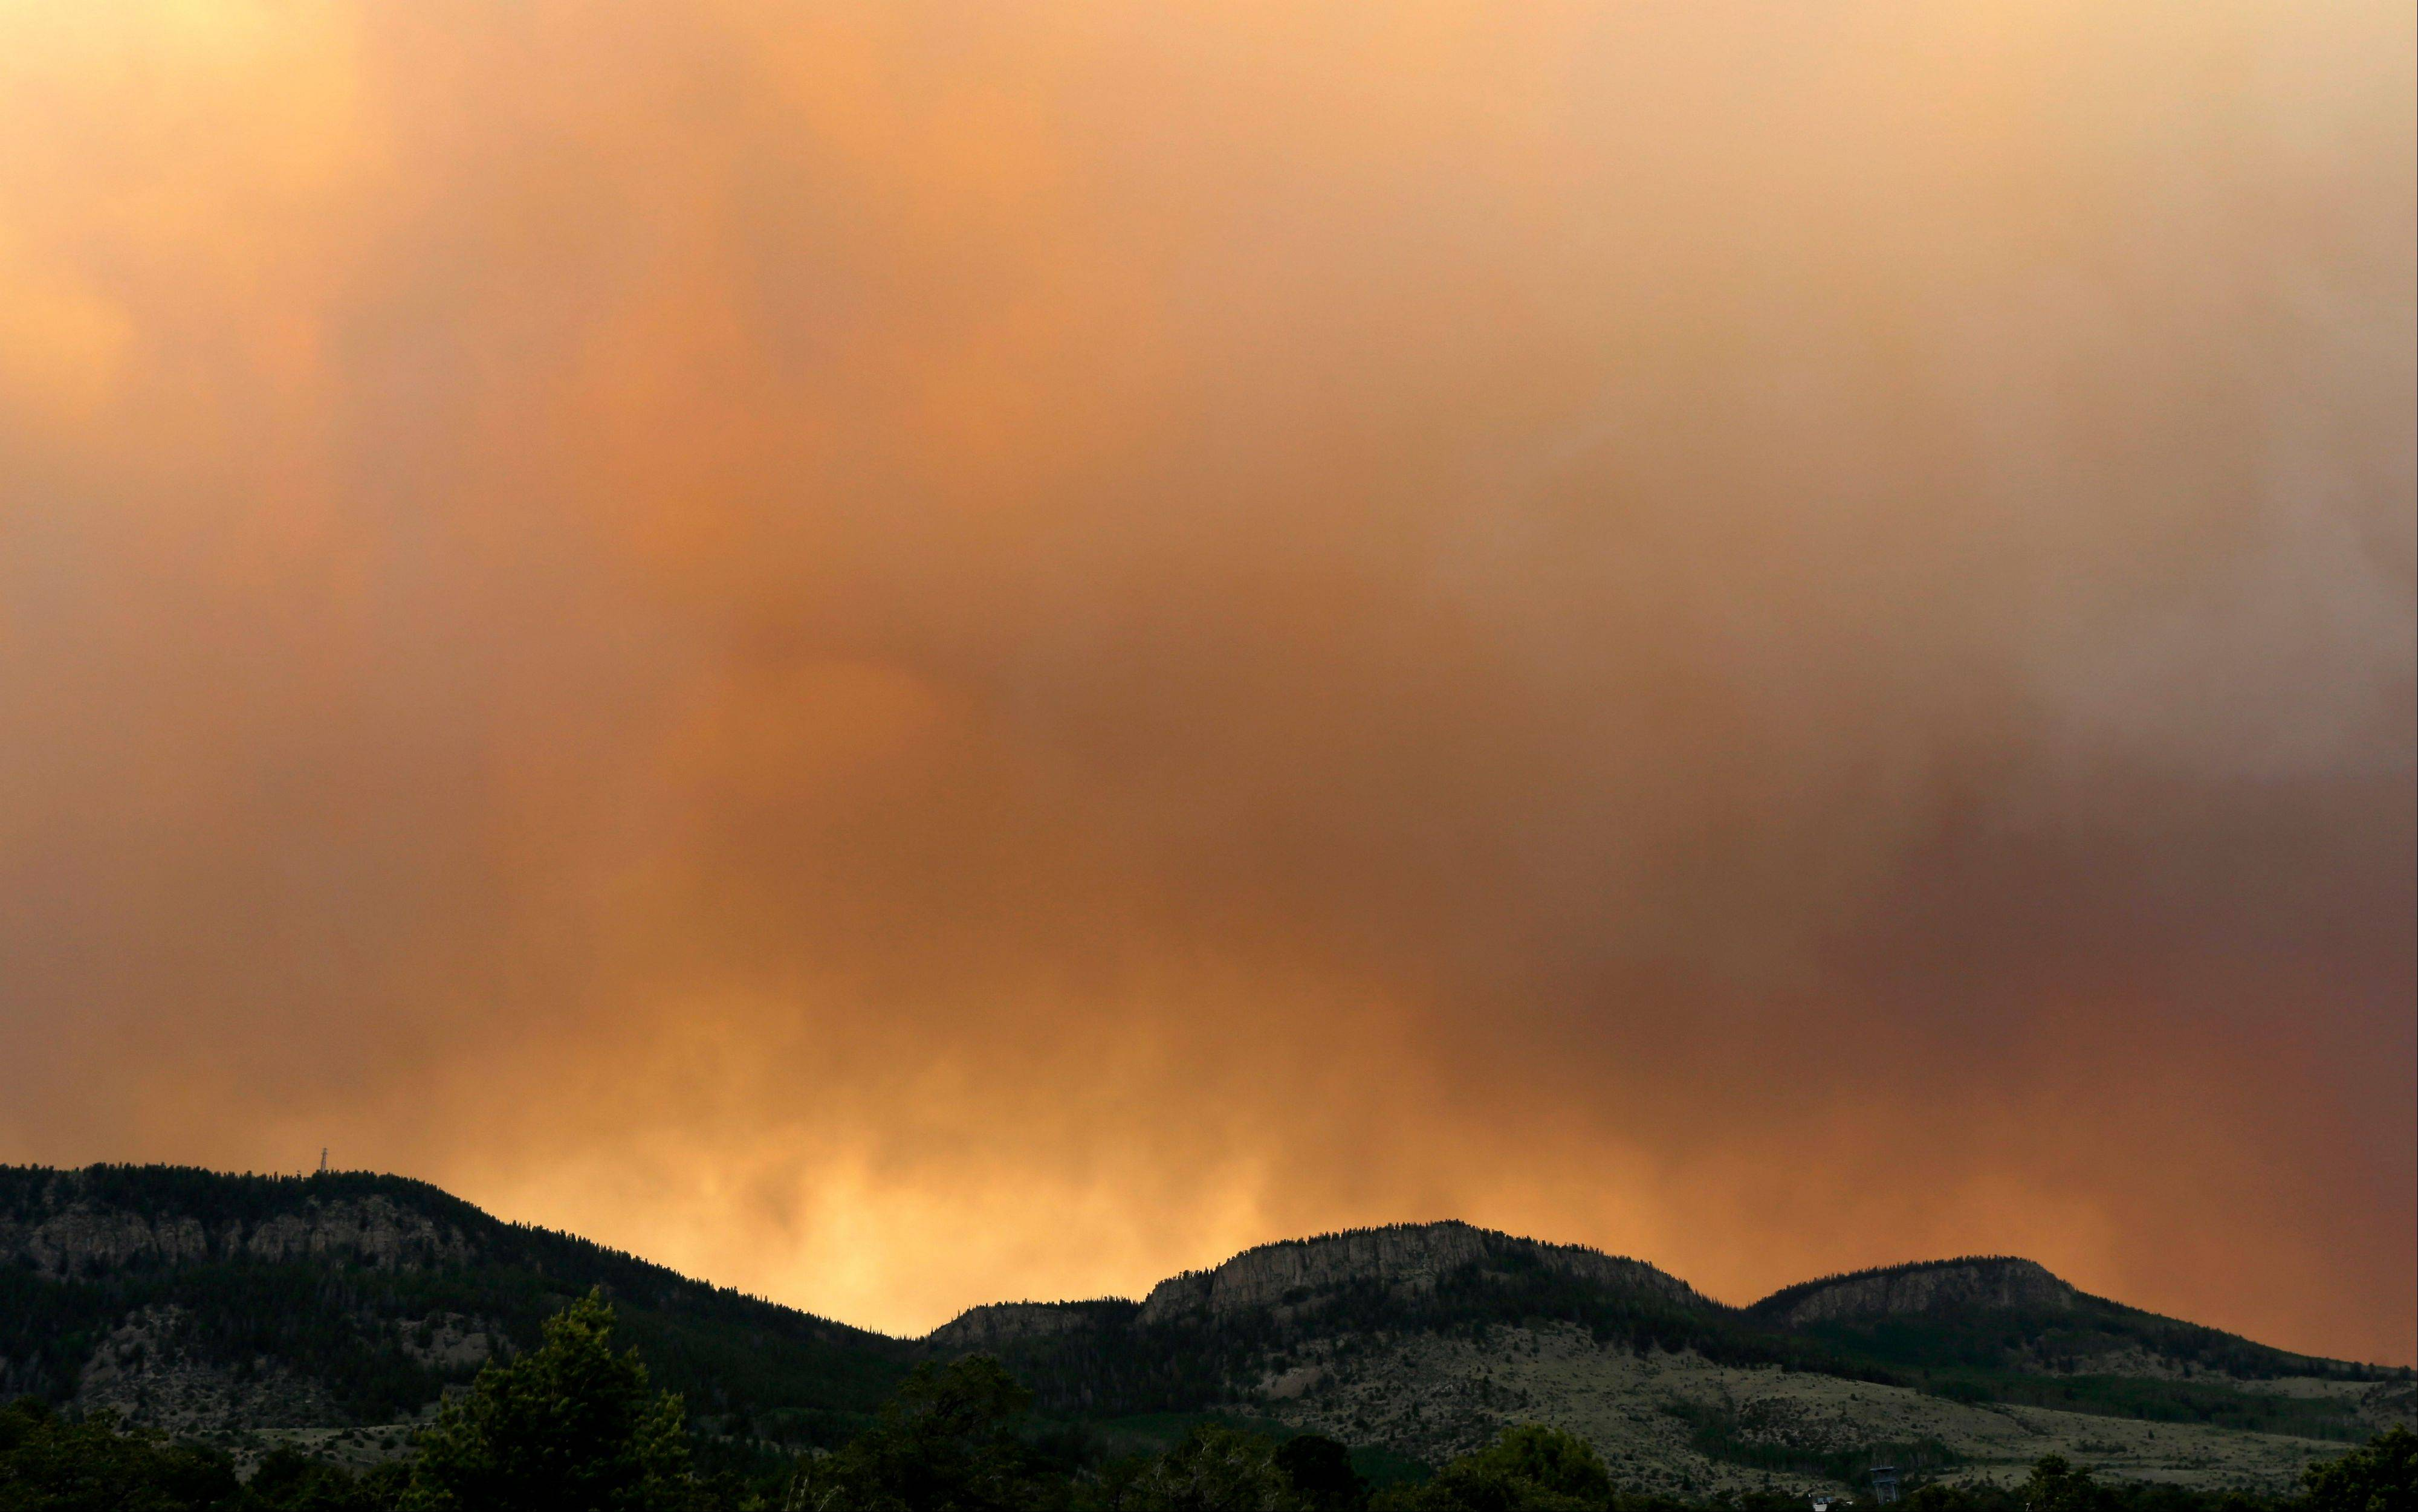 Wildfire smoke blankets a ridge Sunday near Alpine, Colo. A large wildfire near South Fork, a popular summer retreat in southern Colorado, continues to be driven by winds and fueled by dead trees in a drought-stricken area, authorities said Sunday.